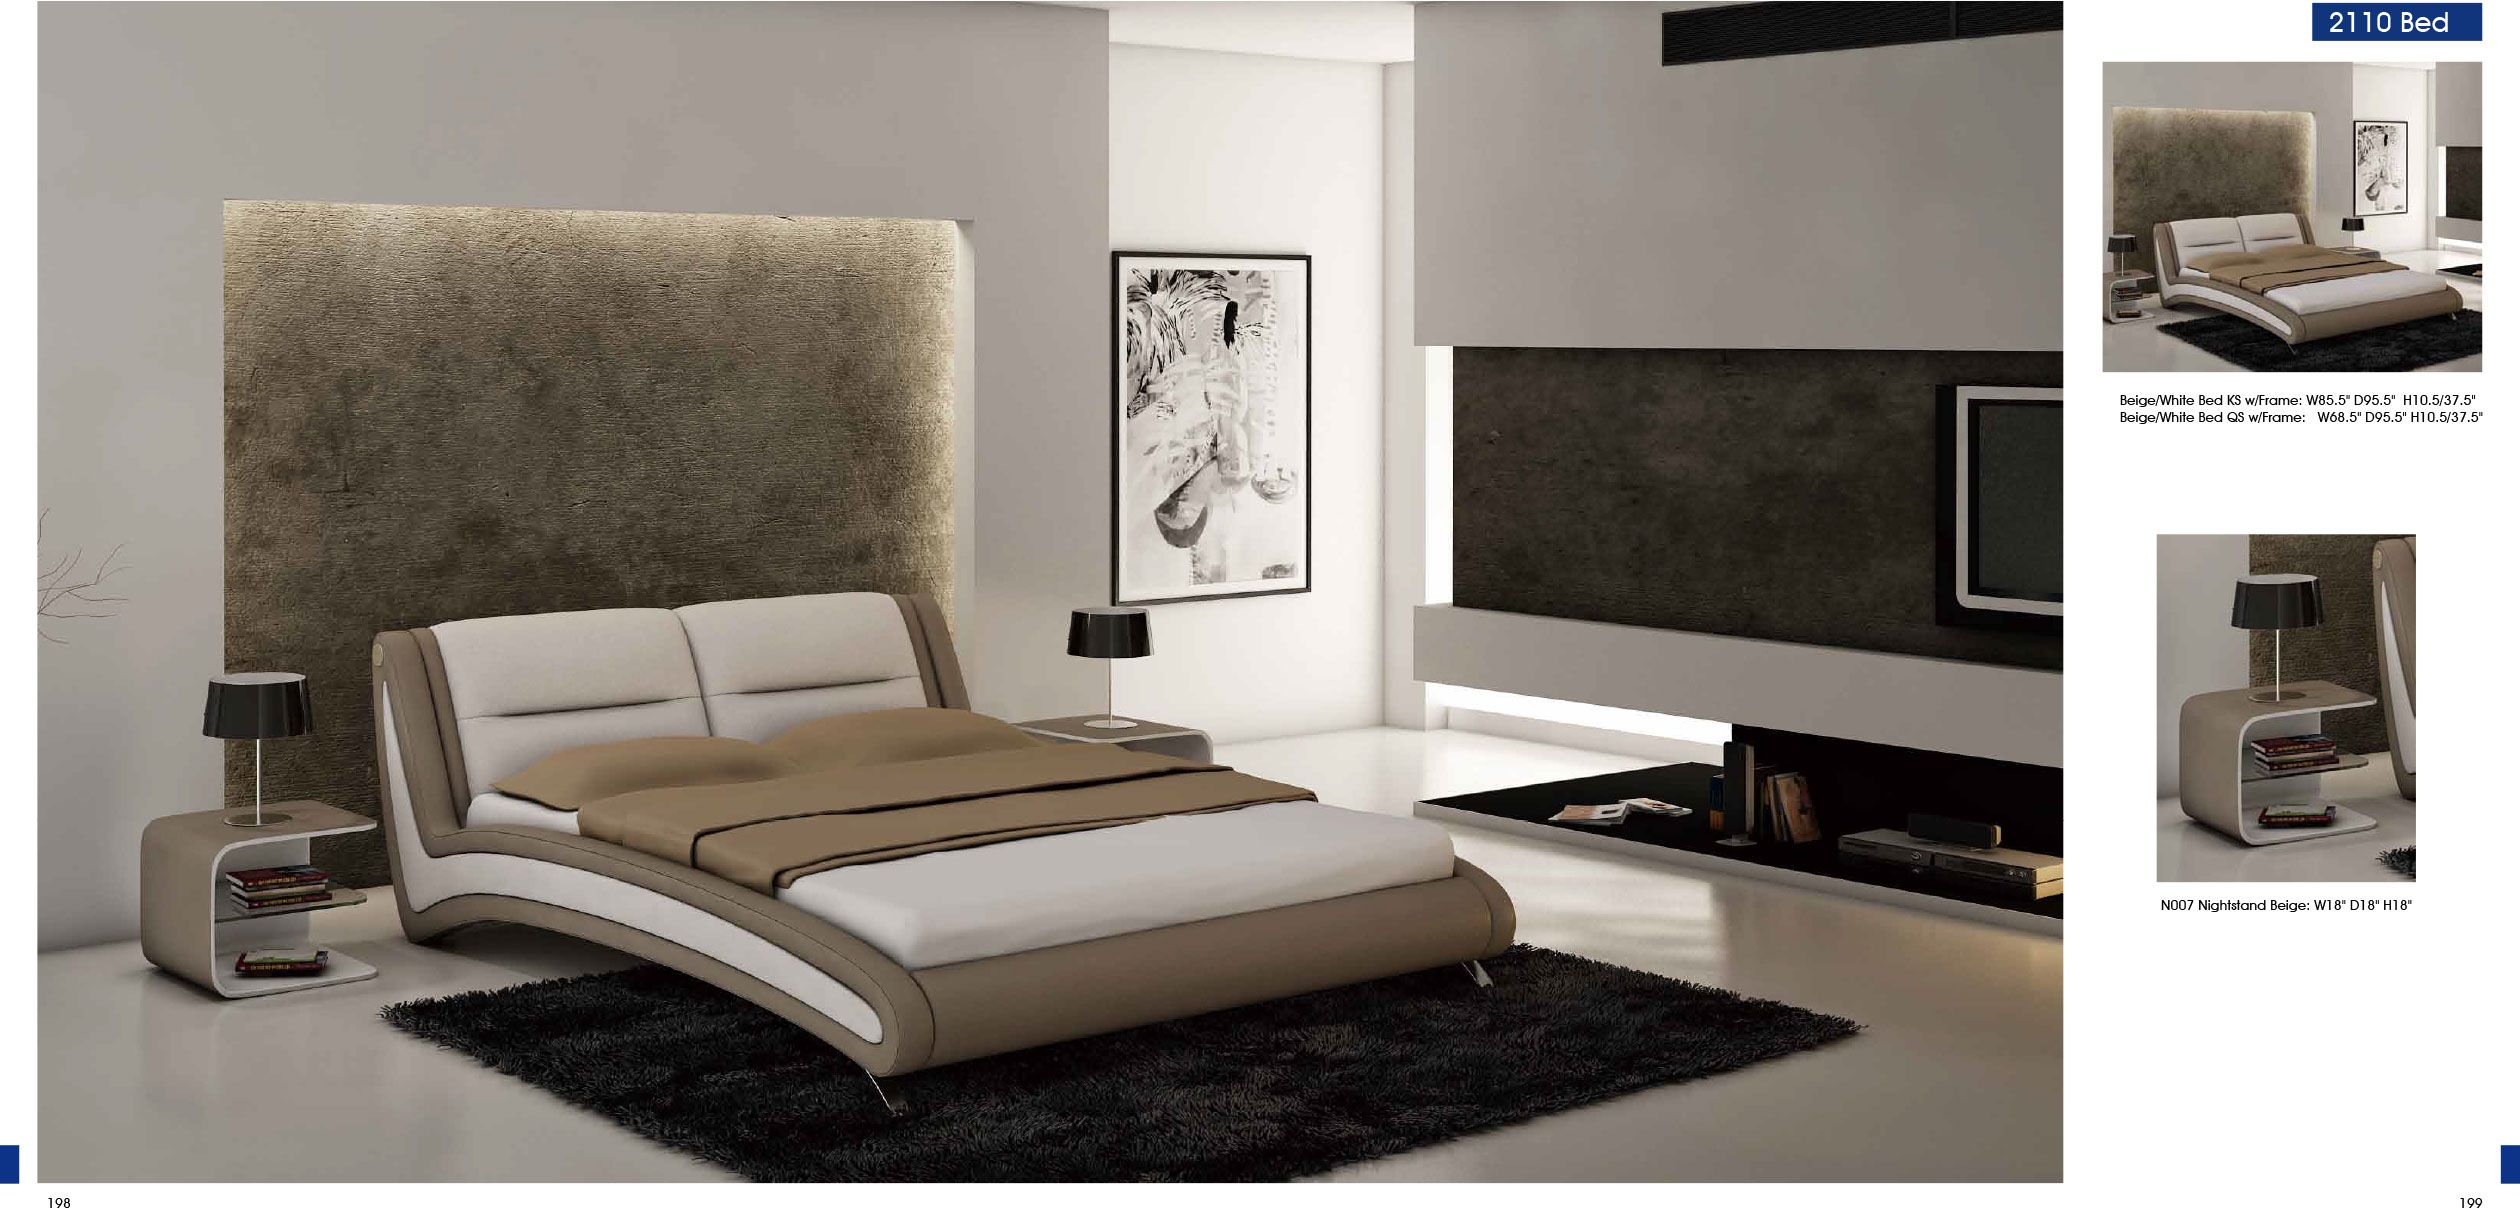 Bedroom furniture bedroom furniture modern bedrooms 2110 for Awesome bedroom sets modern